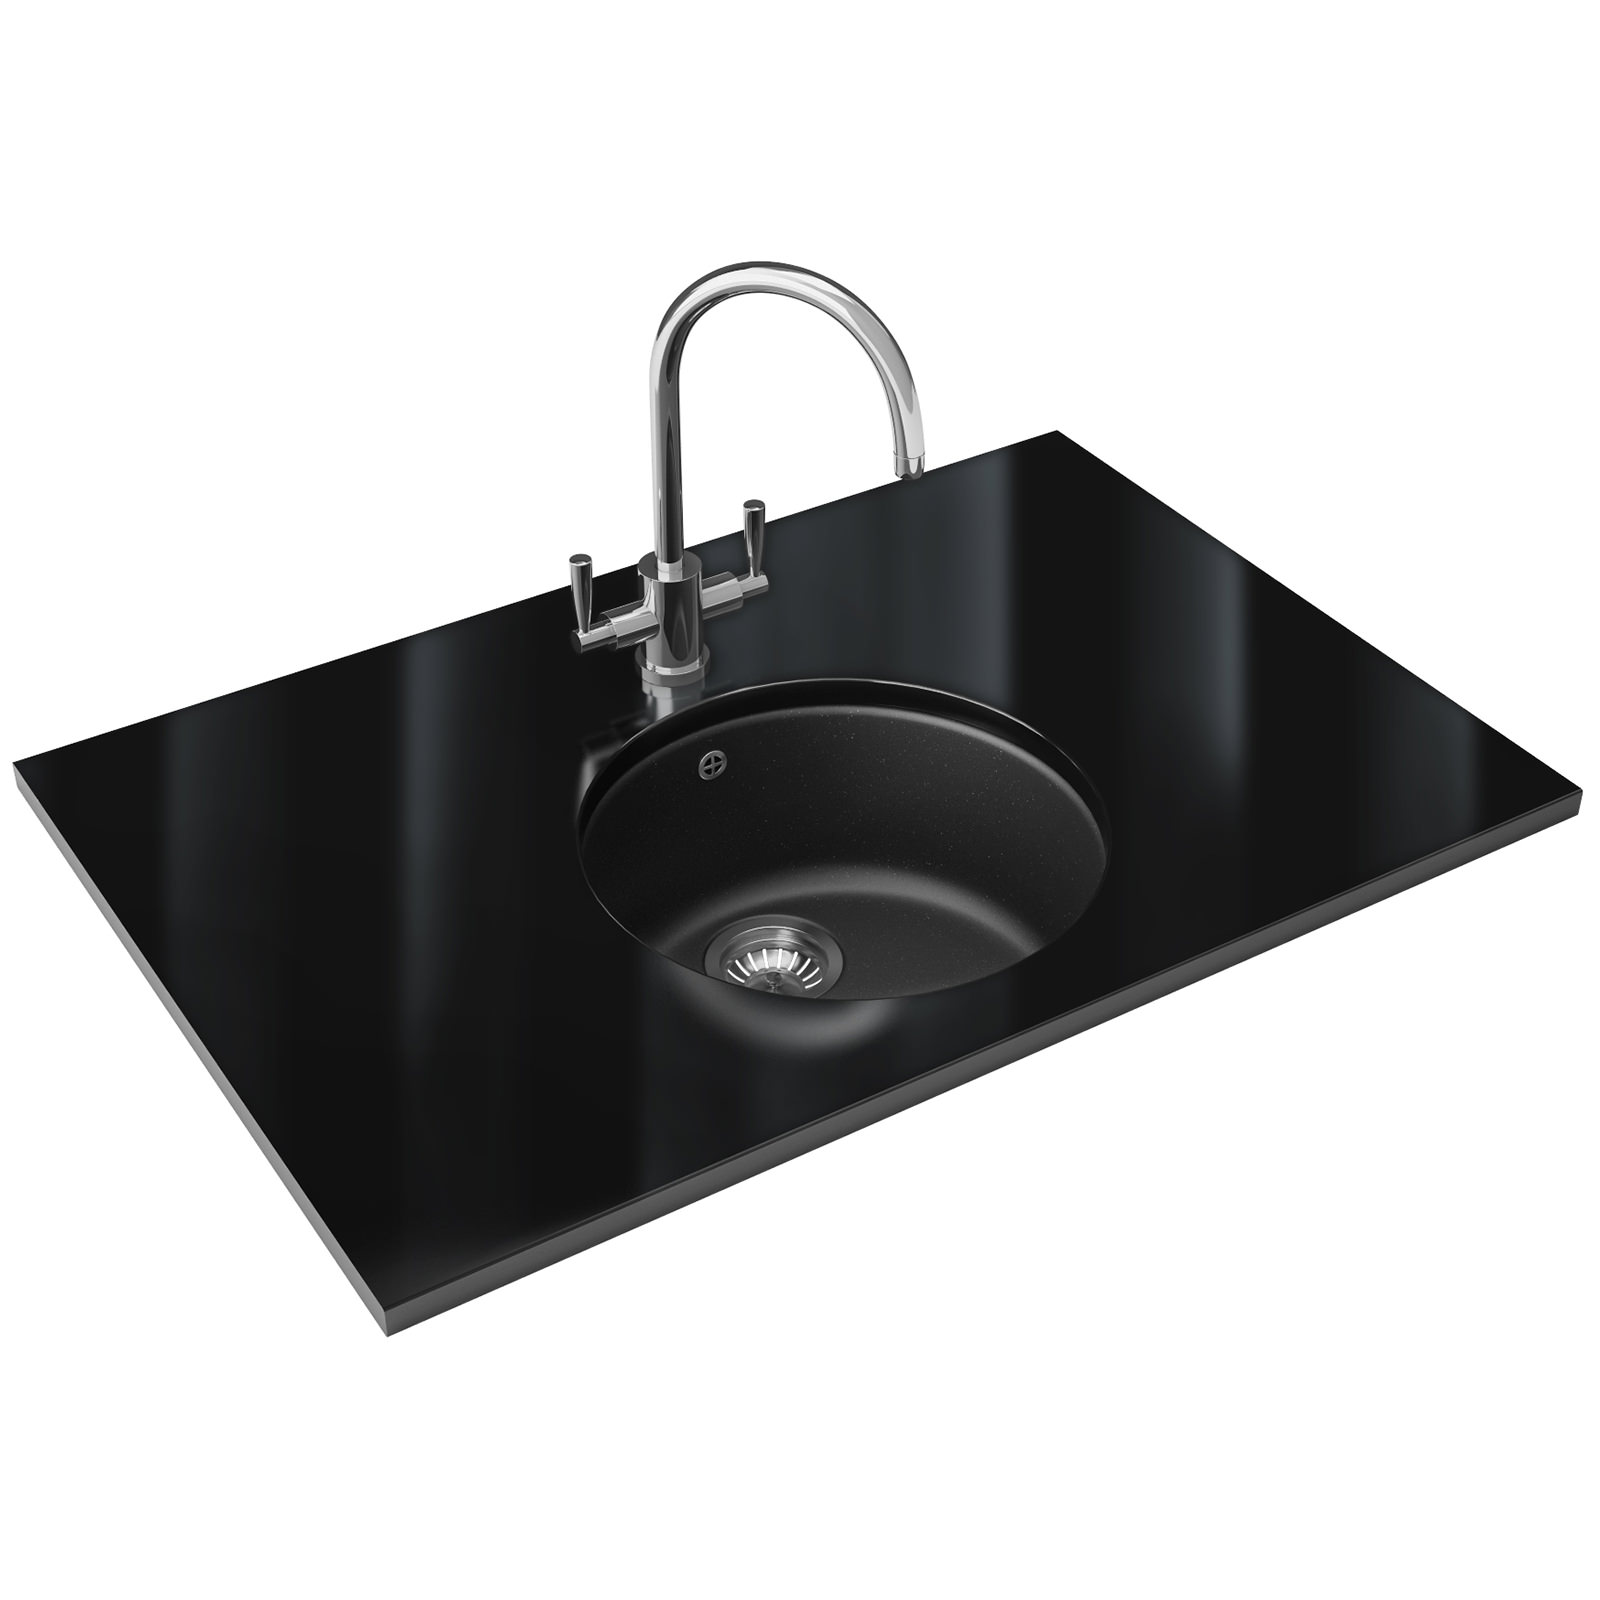 Franke Graphite Sink : Franke Rotondo RUG 110 Fragranite Graphite 1.0 Bowl Undermount Sink ...